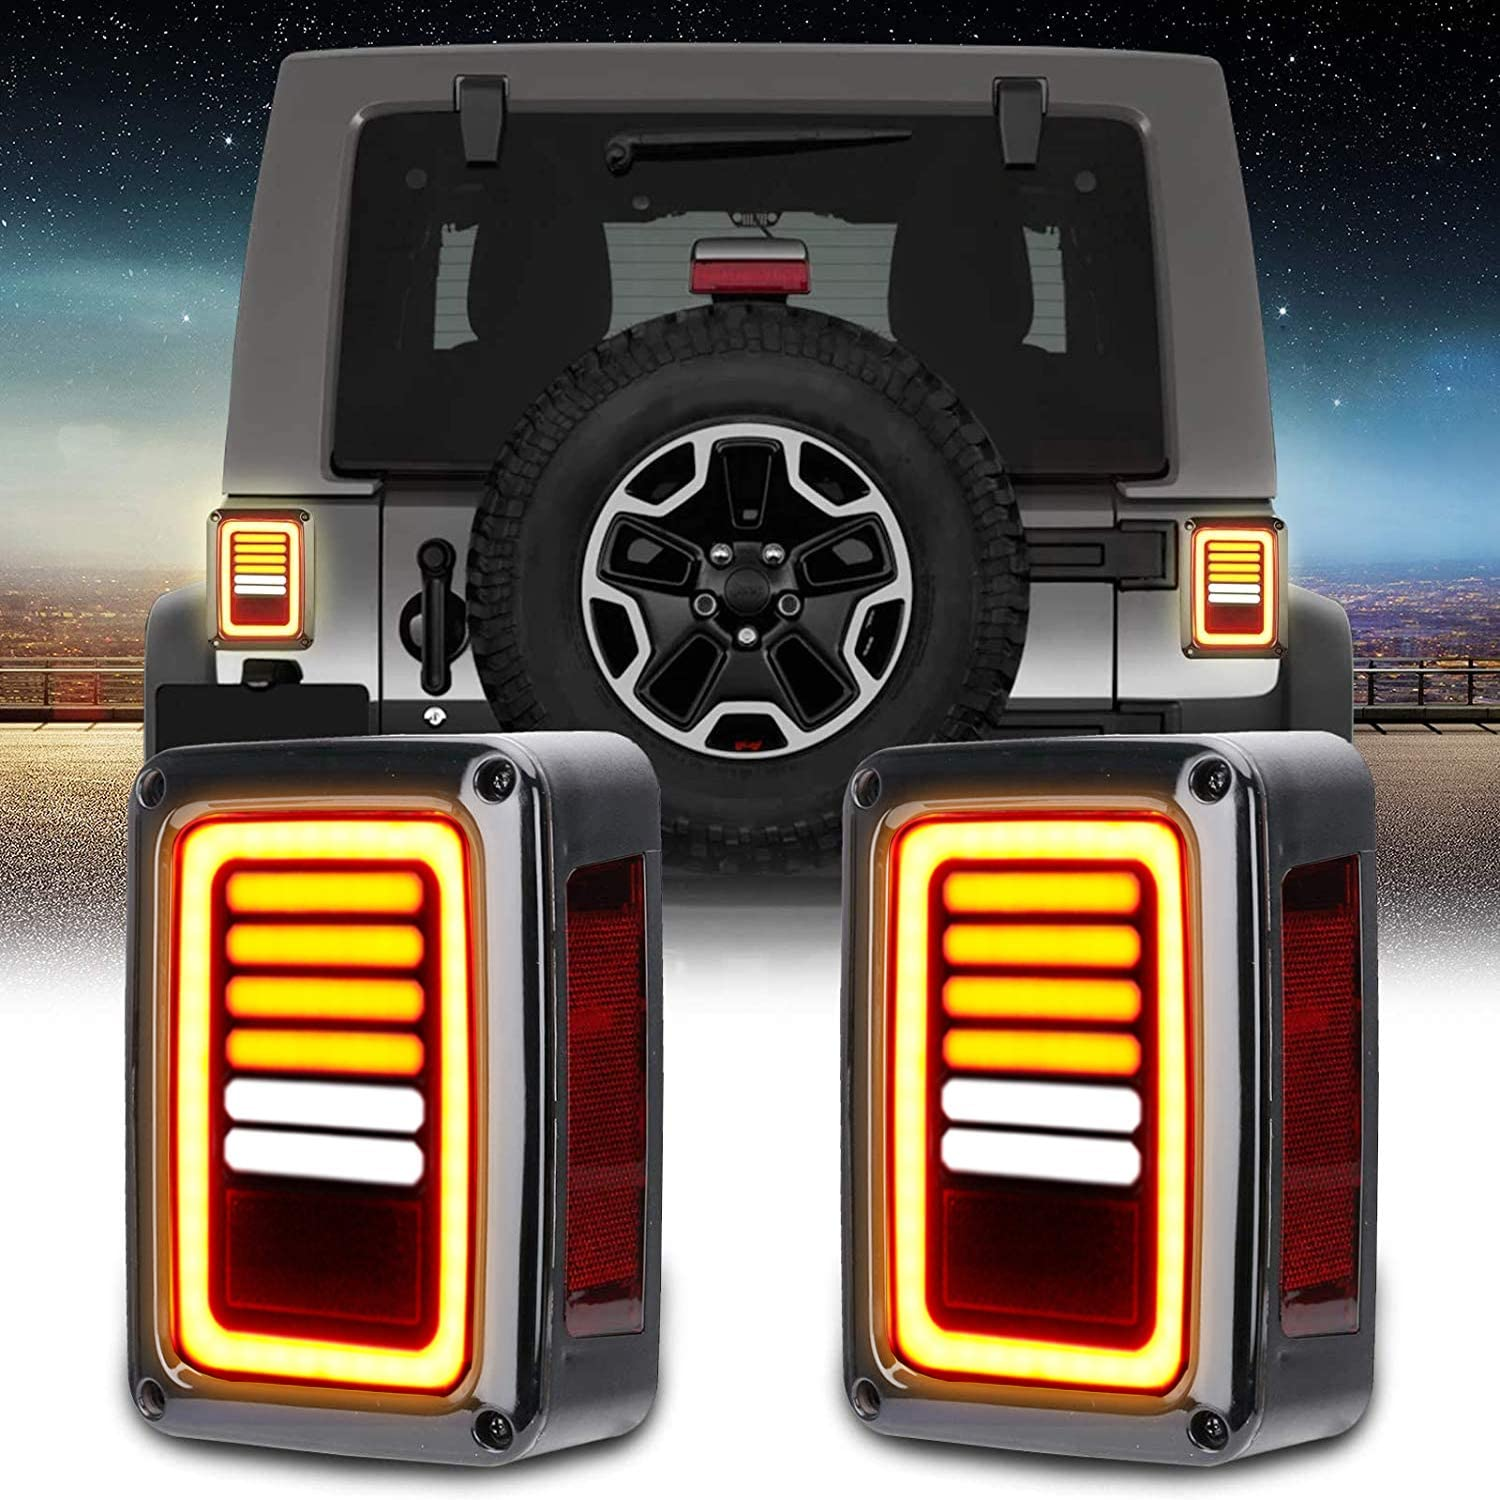 Outlet sale feature BORDAN Wrangler JK 2021 spring and summer new LED Tail Rev for Smoked Lights 07-17